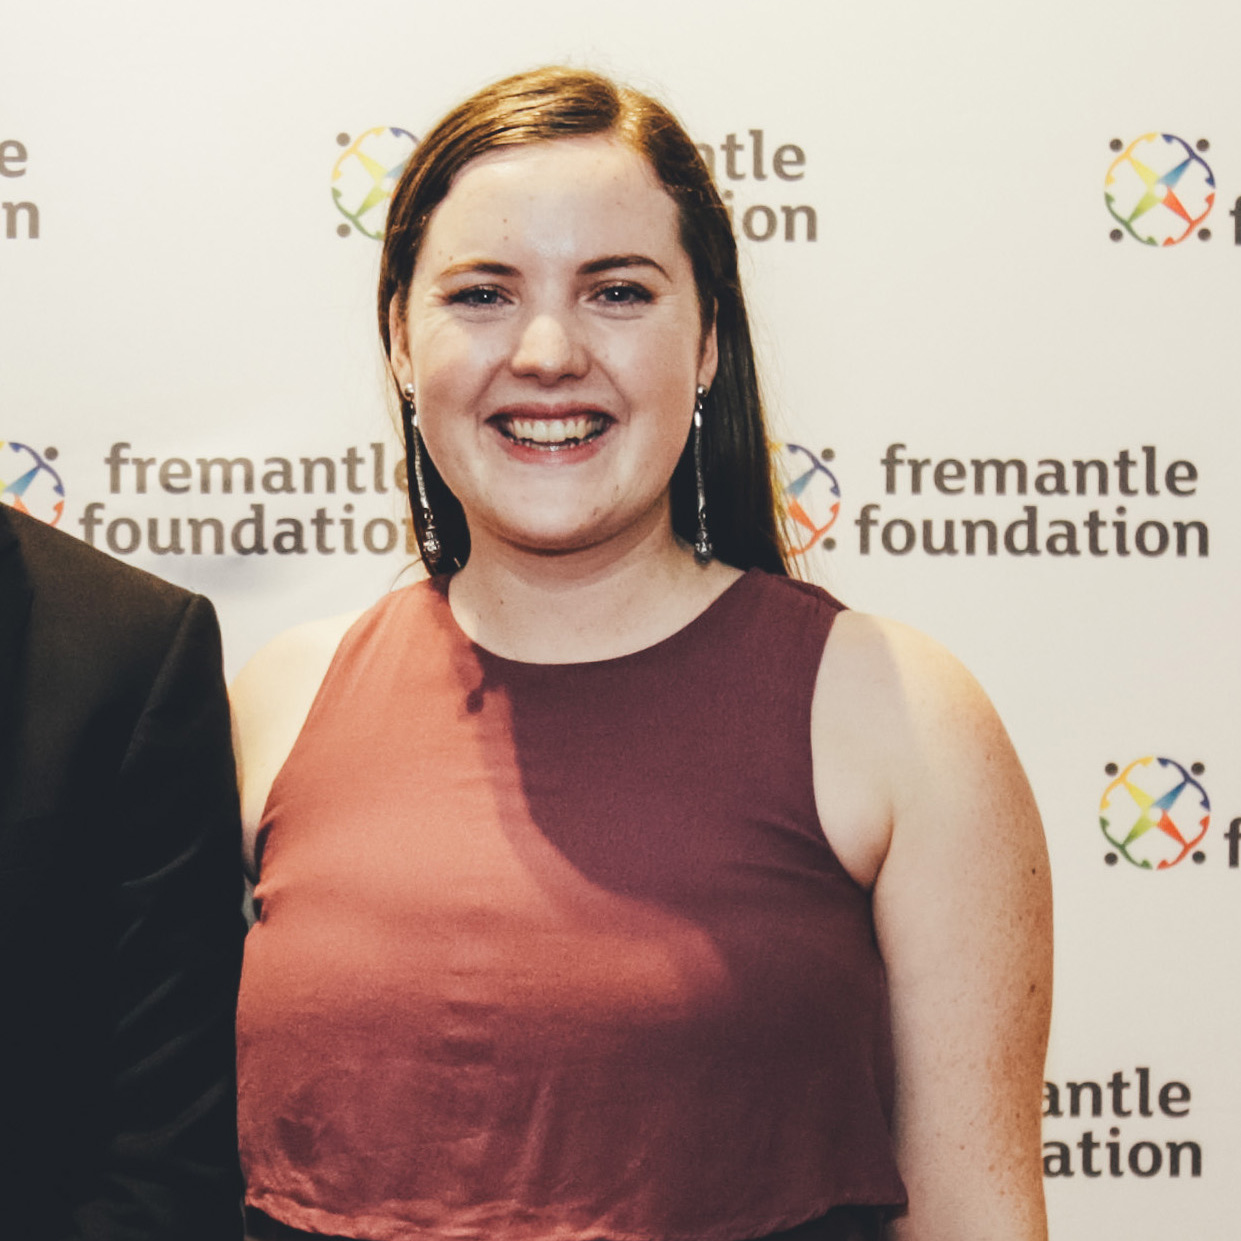 Hannah Fitch-Rabbitt Social Impact Manager, Fremantle Foundation - Tamara, Ellen and the wonderful team at Known Associates nailed the brief and transformed our Fremantle Ball into a wonderland of all things quintessentially 'Freo'.#FreoBall18 was a hit – and it wouldn't have been possible without the support and guidance of the talented team at Known Associates. They took care of everything stressful and ensured our event ran smoothly from start to finish. This allowed our team to mingle and network with our guests, and not sweat the small (and very big) stuff because we knew KA were on the job. Broken bulb in the projector minutes before the guests arrived?! Not a problem, KA had it fixed in seconds without us even realising there had been a problem.Our guests were blown away by the night and have already started talking about next year's event so the pressure is on to impress – lucky we have Team KA on speed dial.